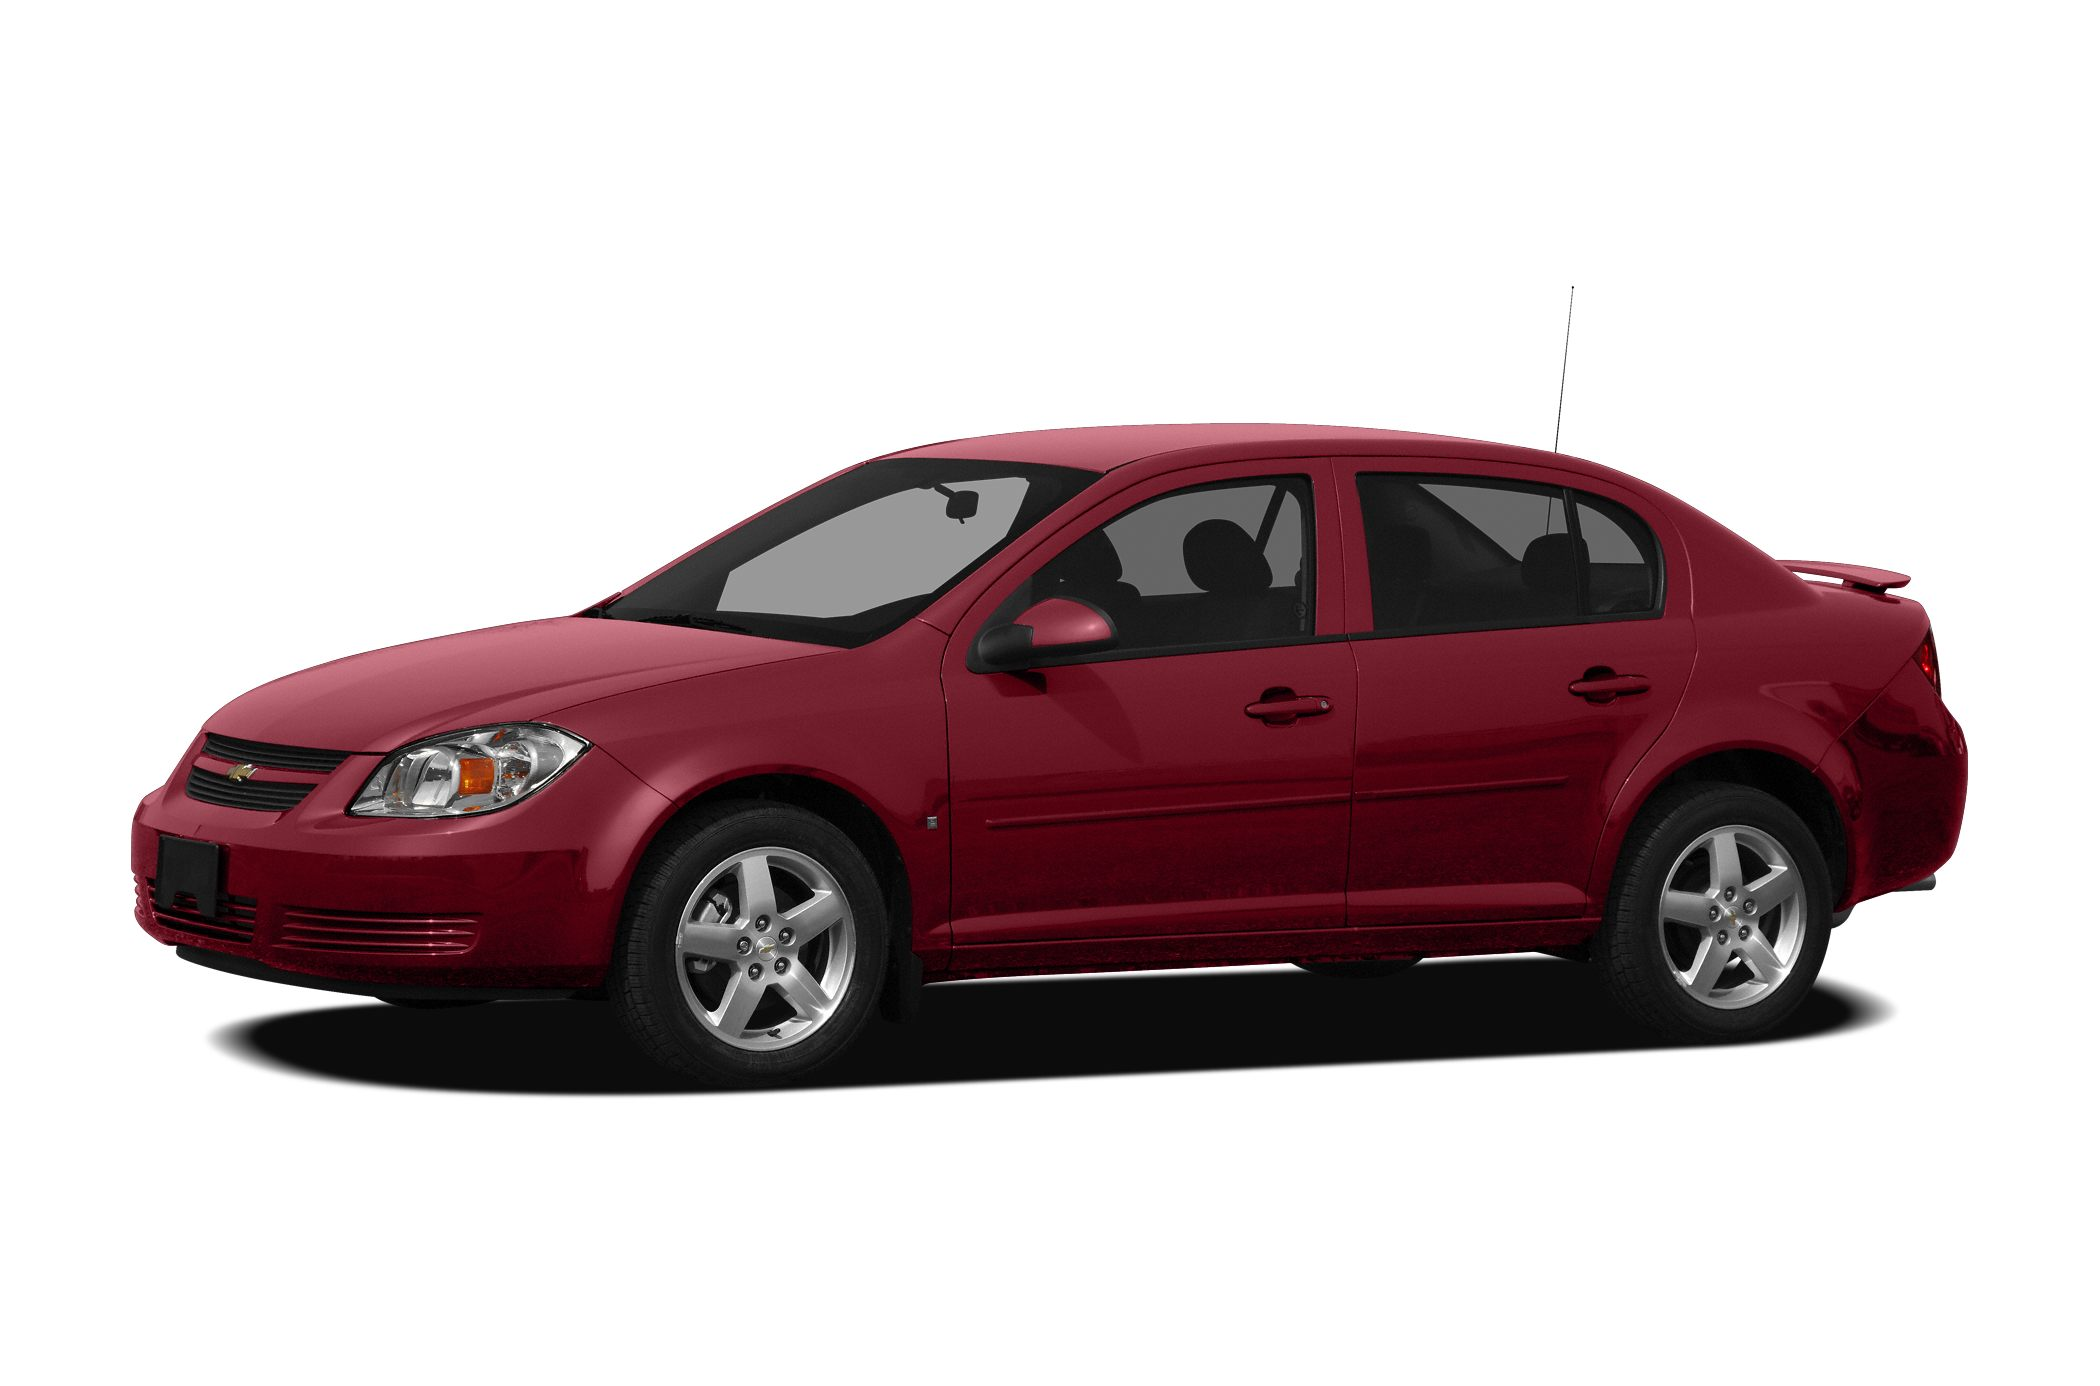 2010 Chevrolet Cobalt LT Dare to compare Climb inside the 2010 Chevrolet Cobalt This vehicle has